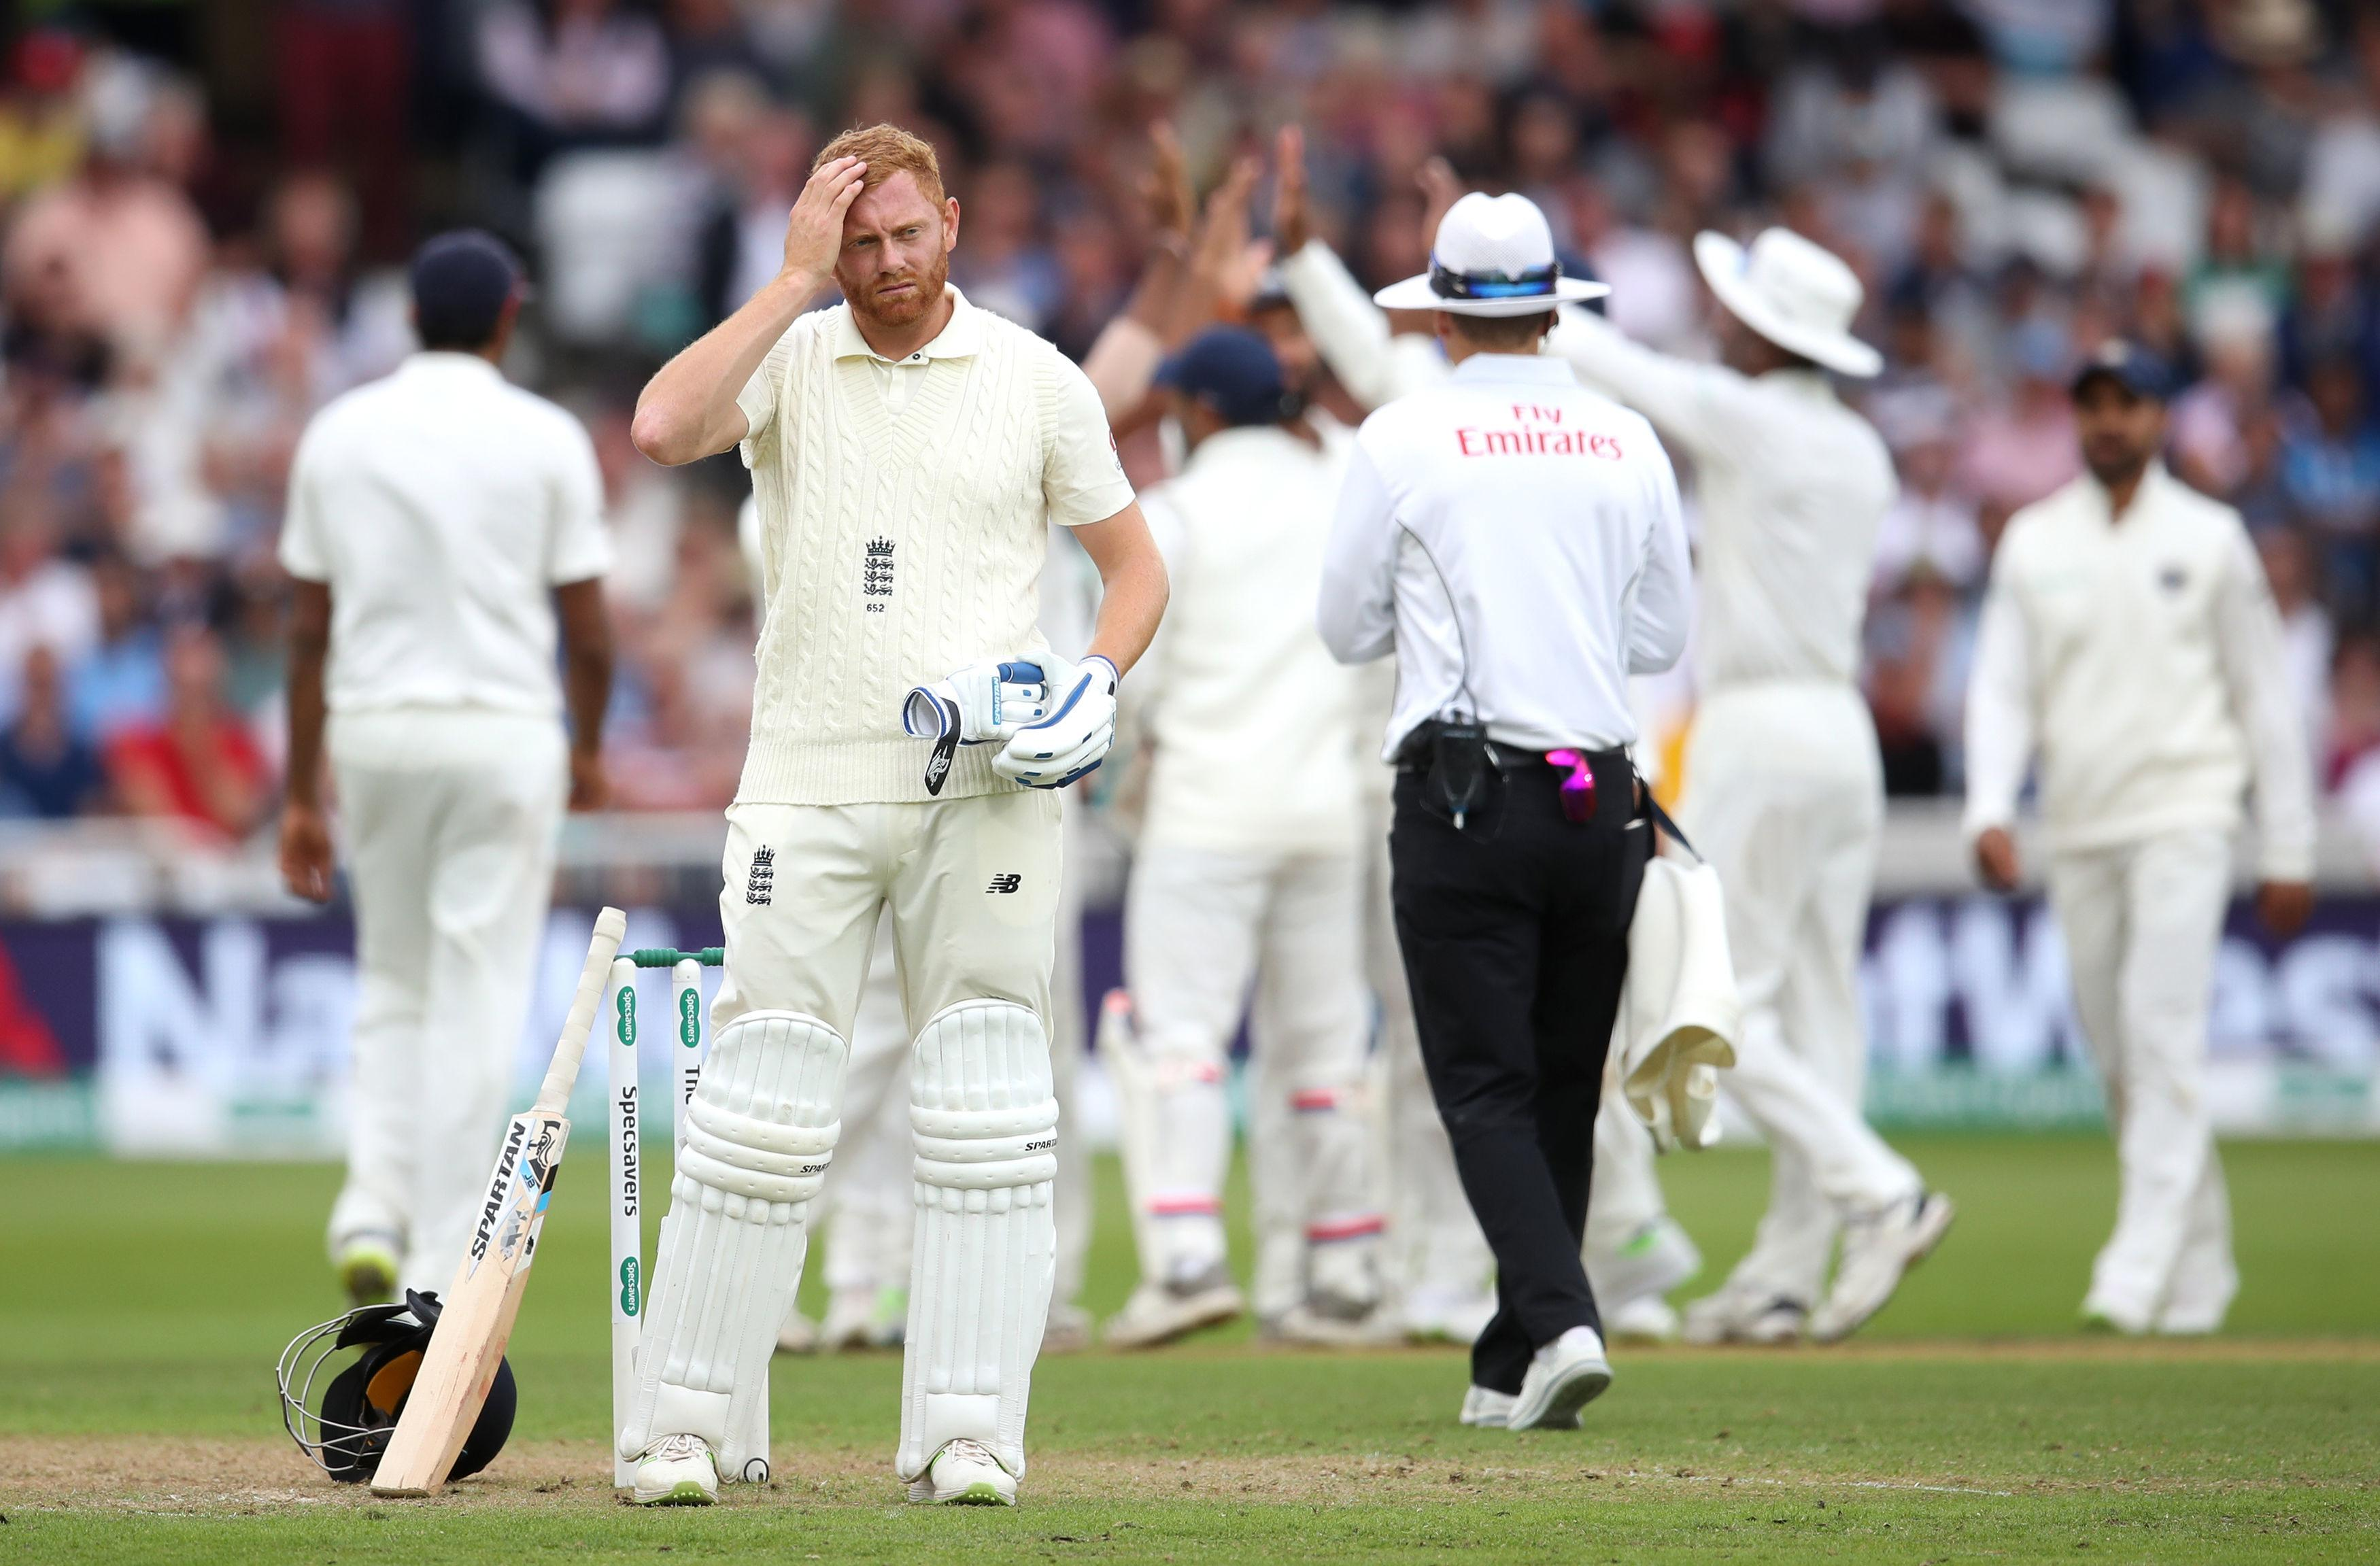 England's innings lasted just 38.2 overs as they were skittled by the Indian bowling attack